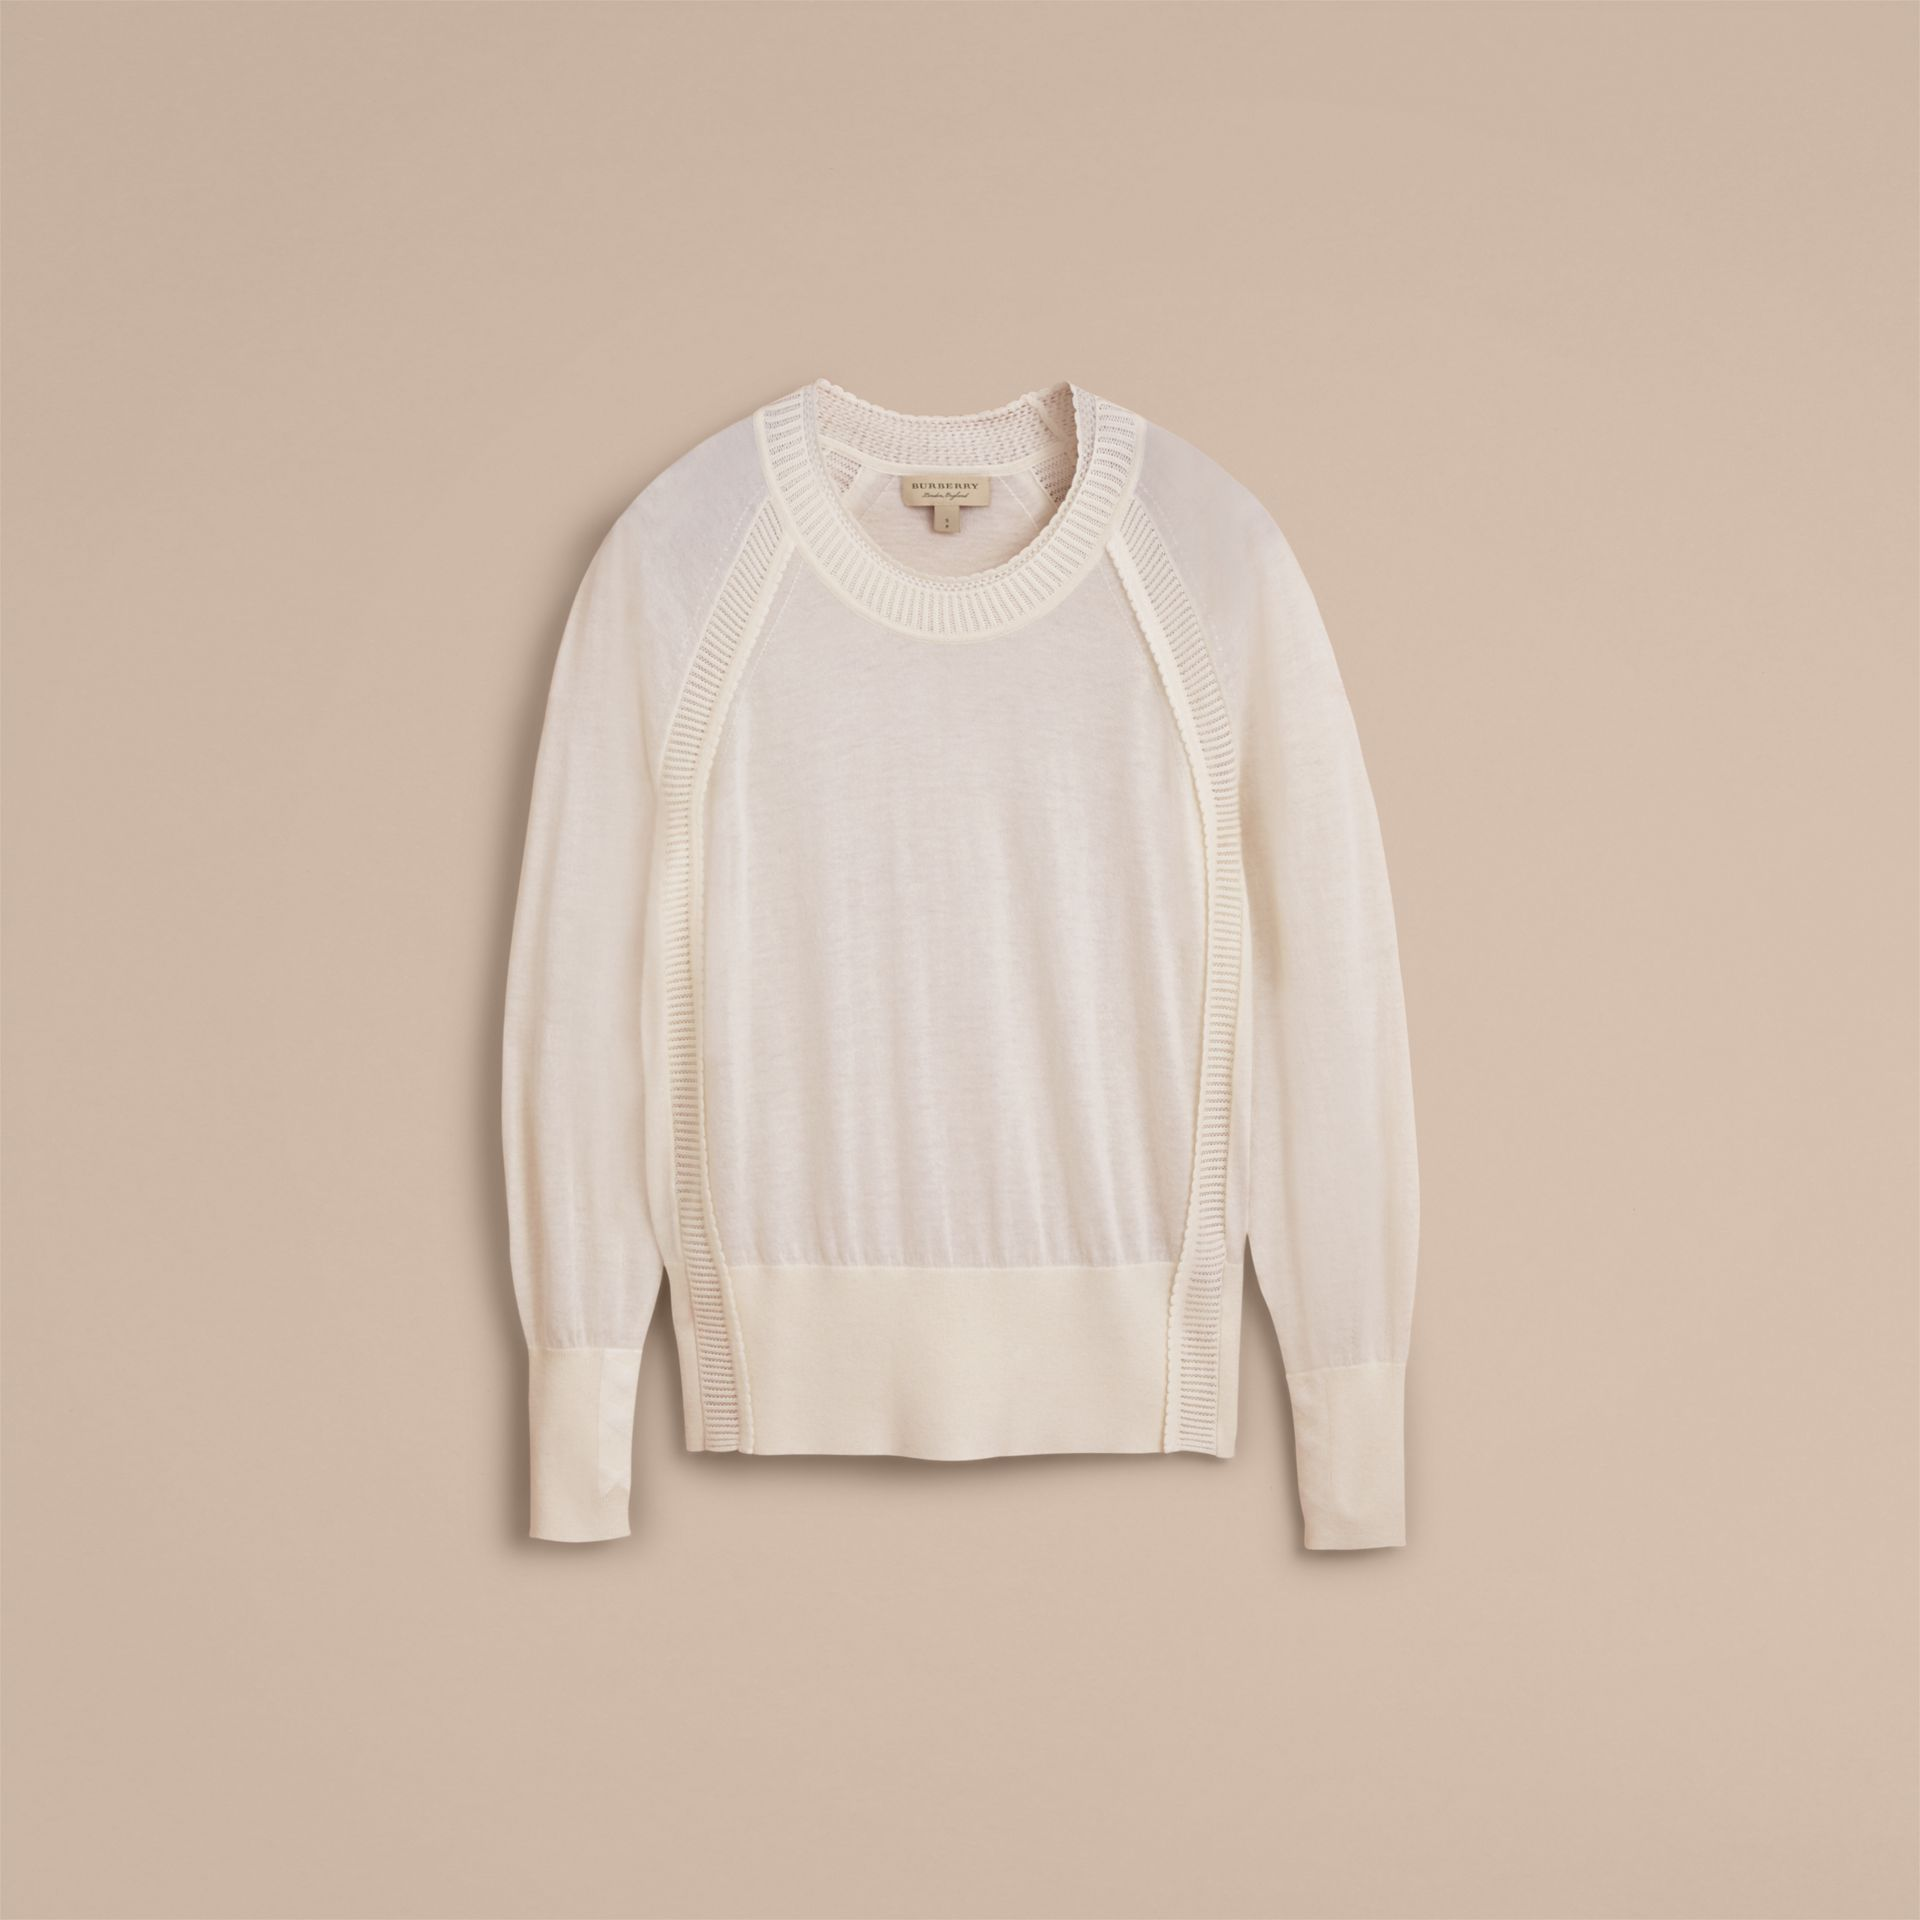 Open-knit Detail Cashmere Crew Neck Sweater in Natural White - Women | Burberry United States - gallery image 4